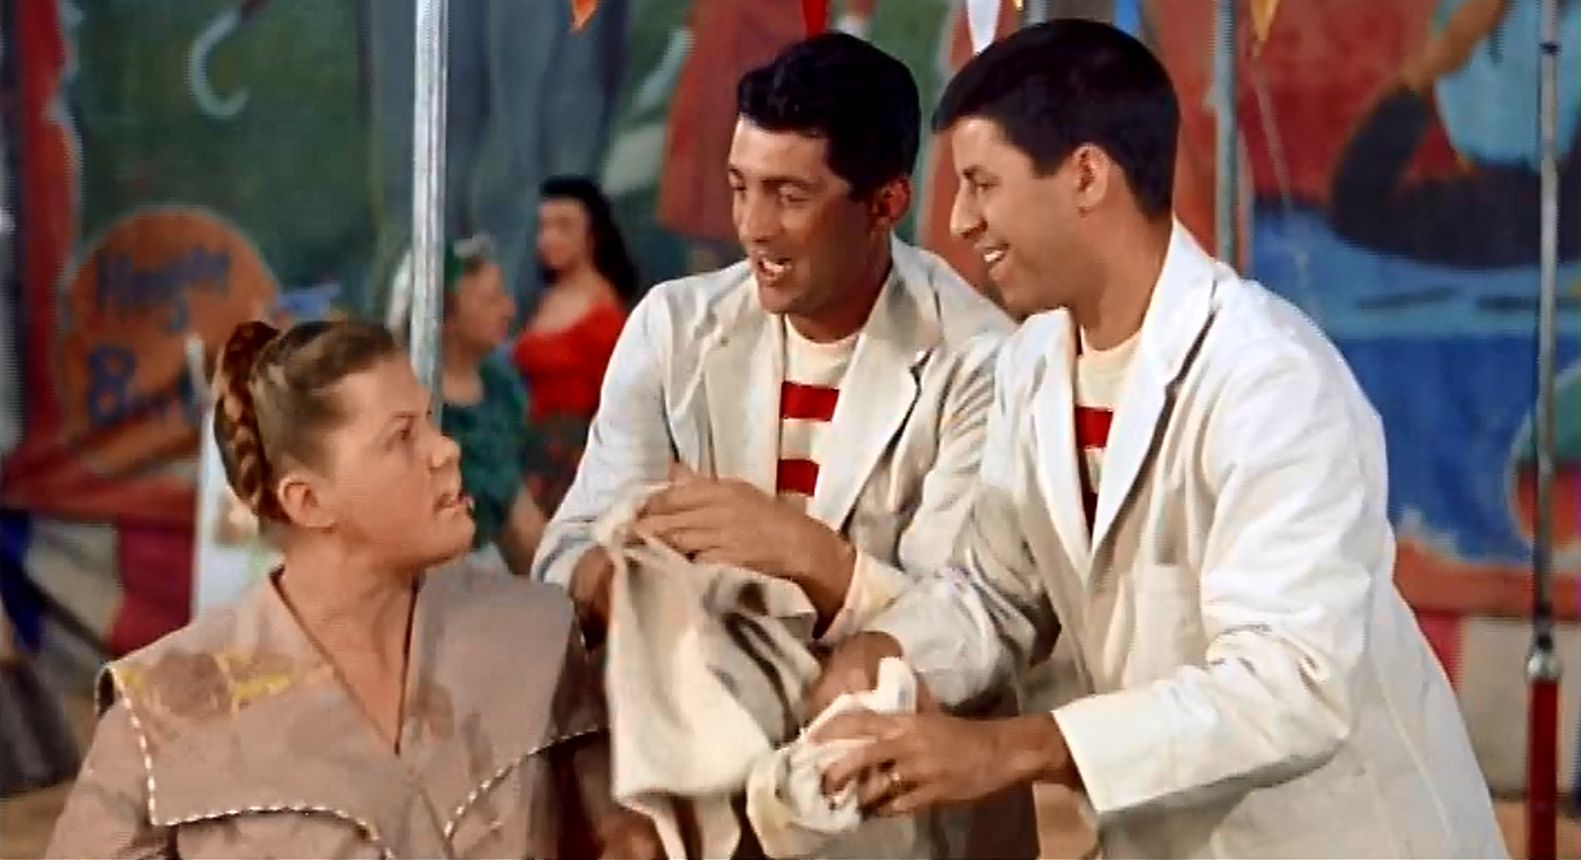 Jerry Lewis, Dean Martin, and Kathleen Freeman in 3 Ring Circus (1954)